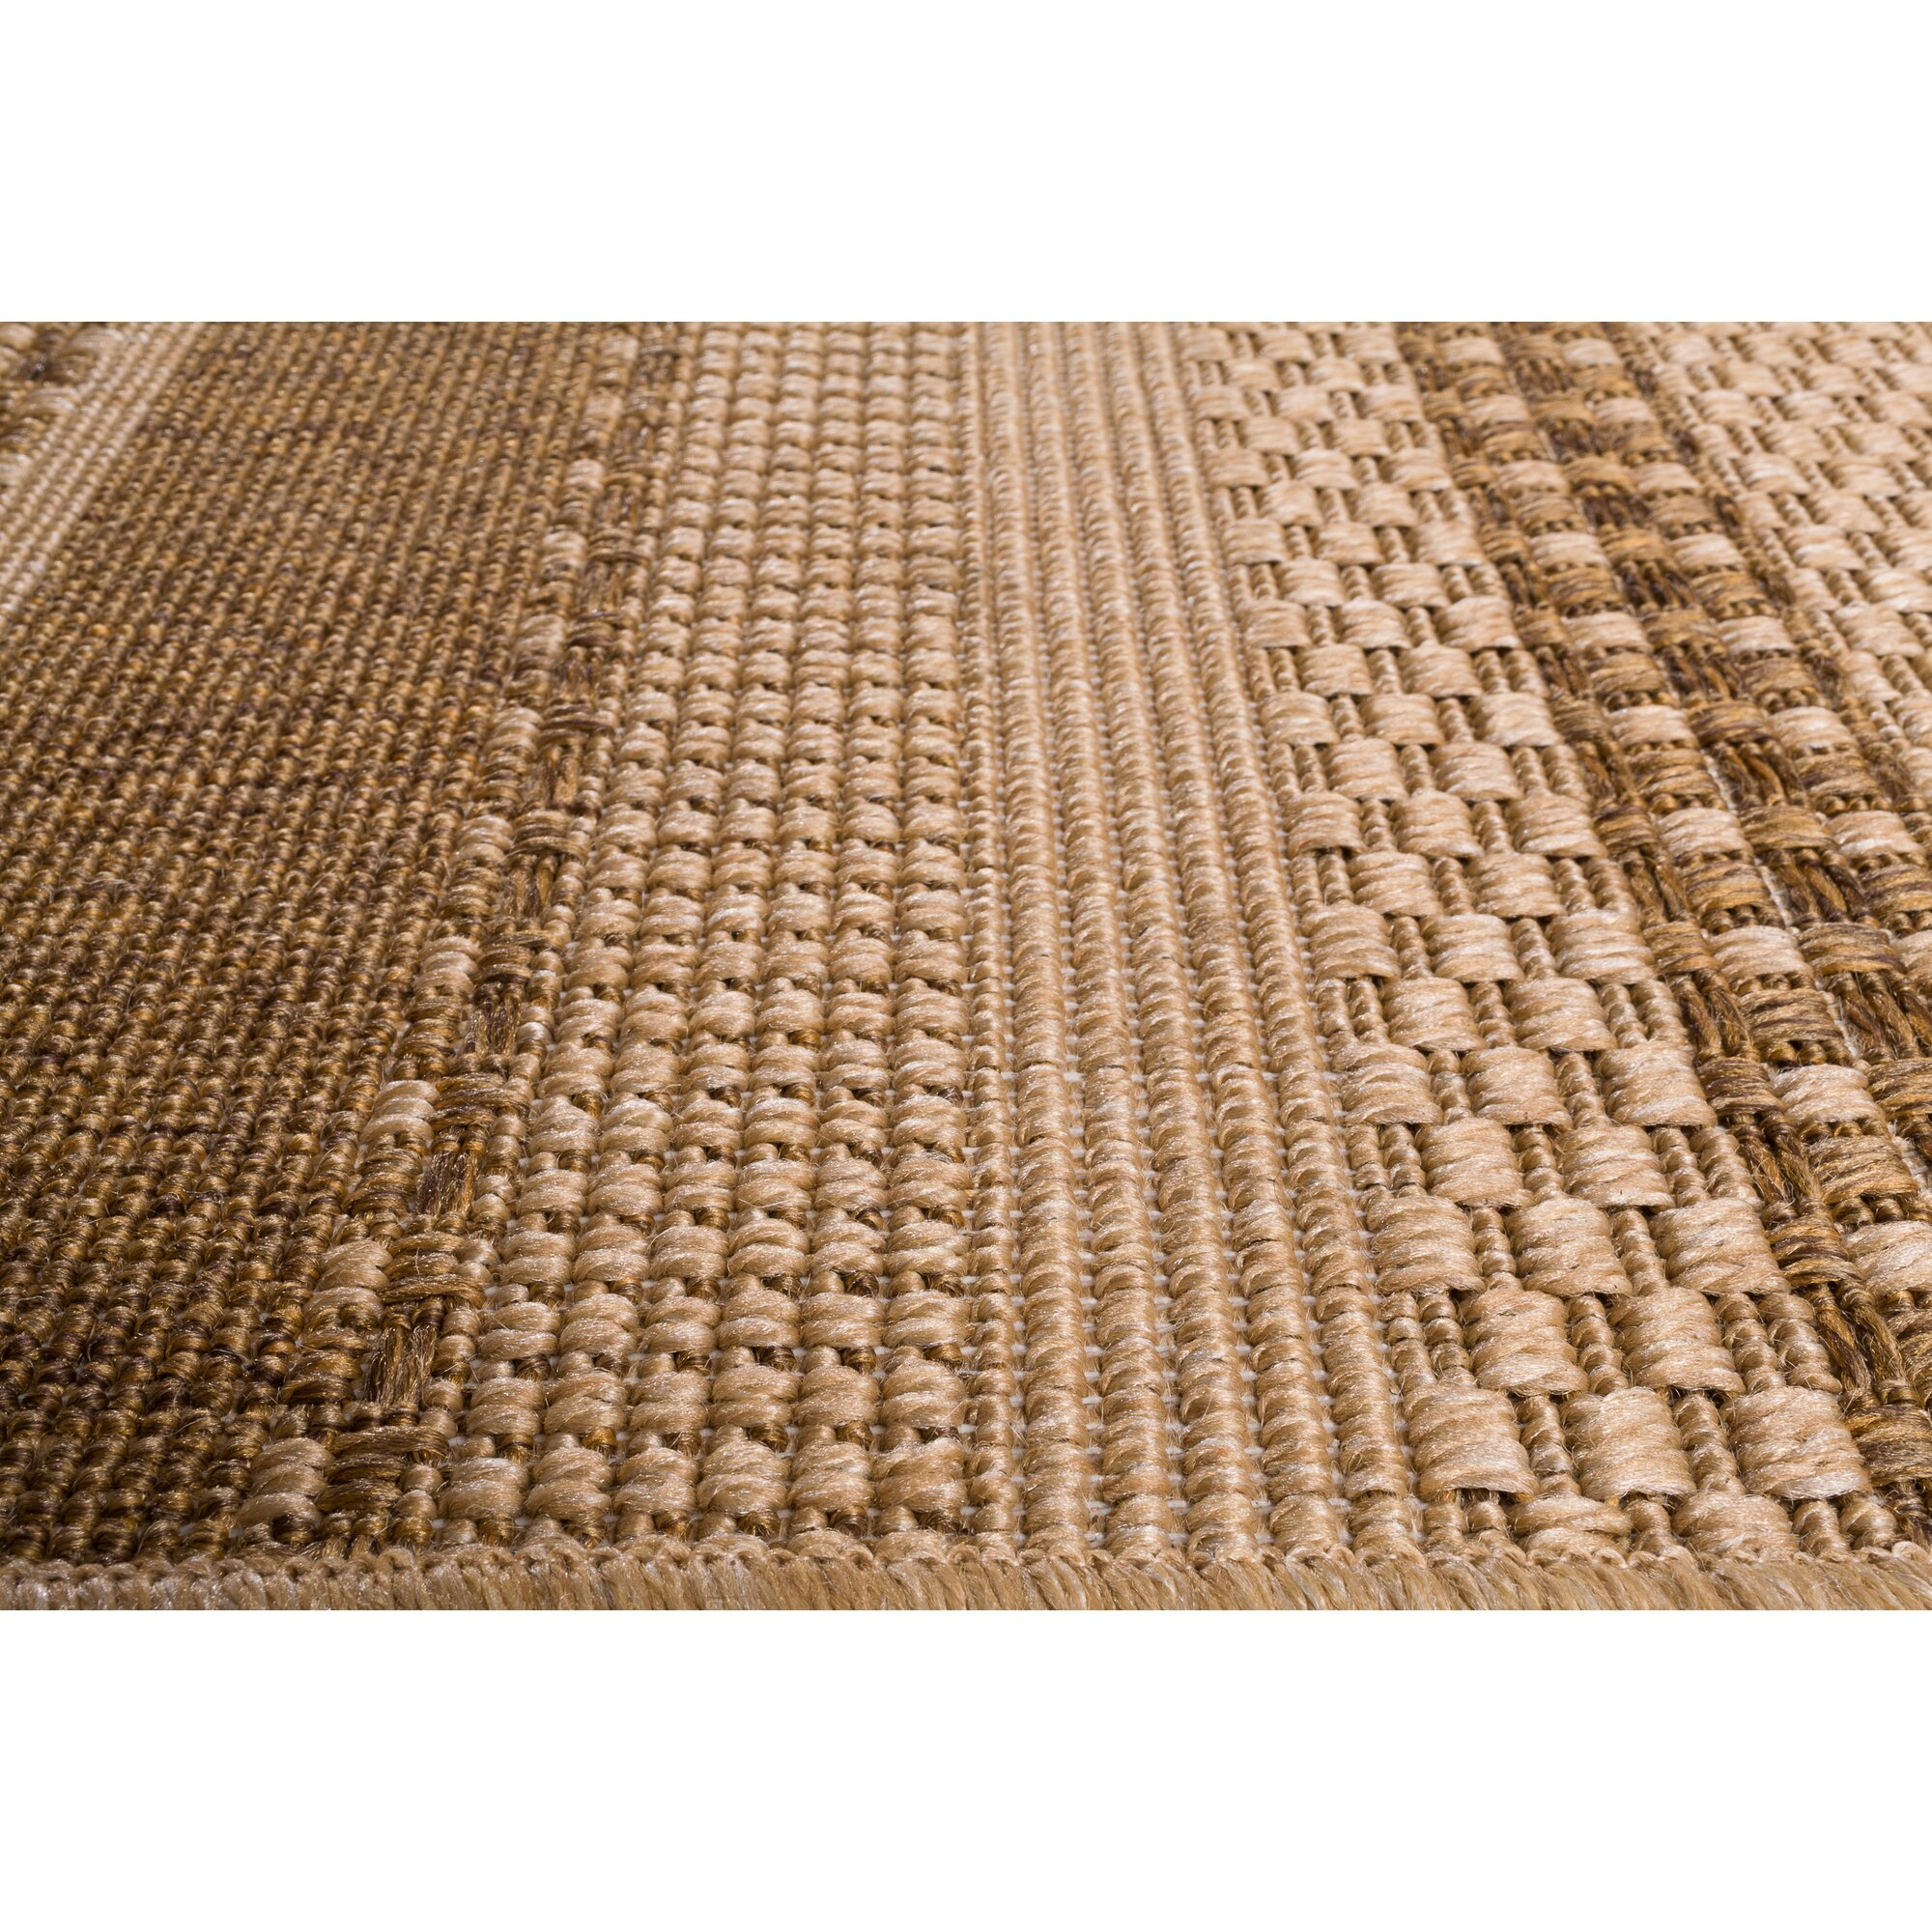 Large Indoor Outdoor Rugs Large Outdoor Rug Outdoor Rug Graphite ...